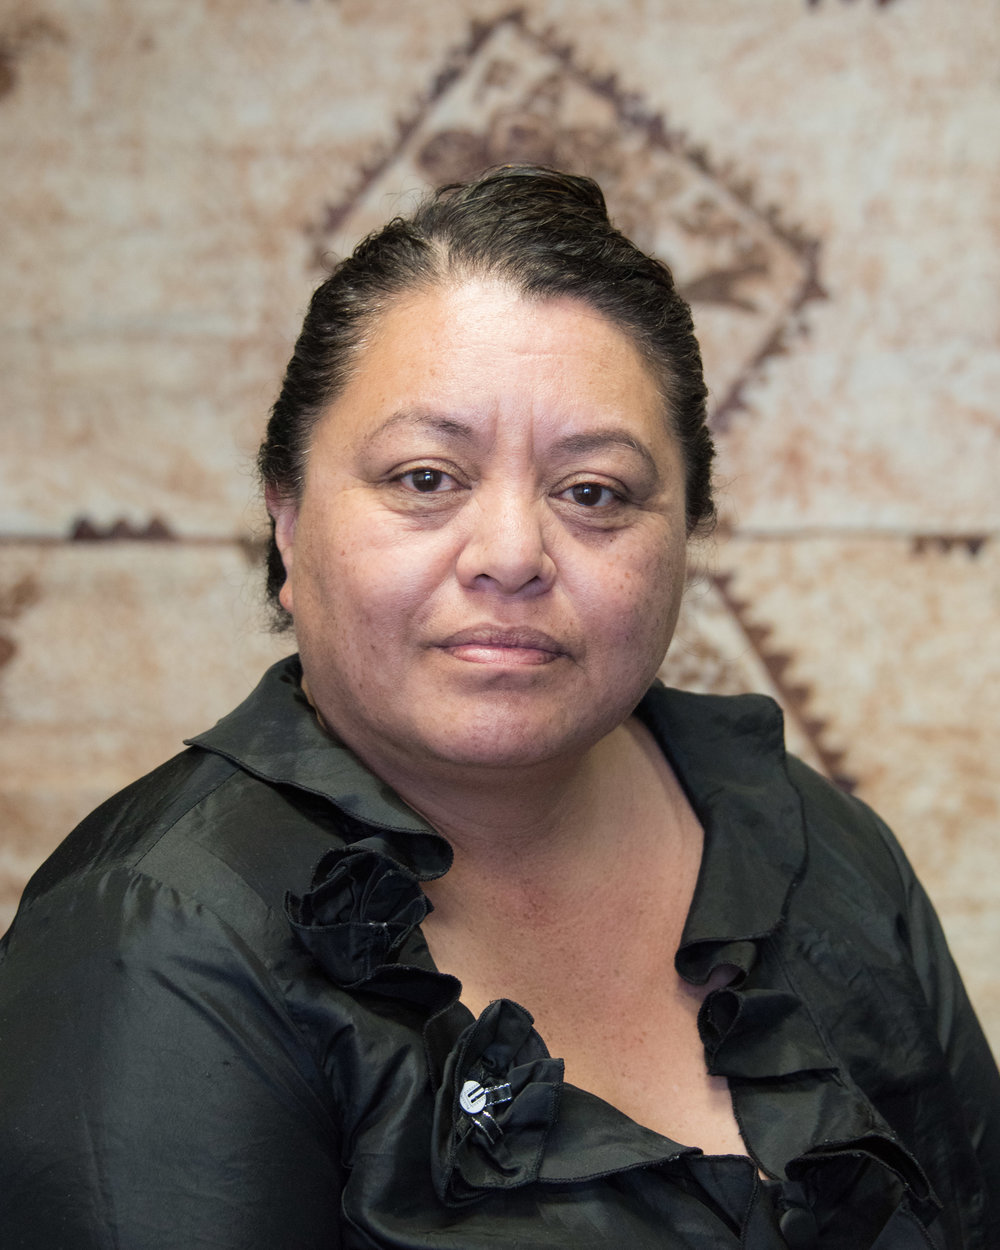 Leainne Nathan   Service Delivery Manager  As Service Delivery Manager for FSM, Leainne is responsible for overseeing the Family Start programme and ensuring it is effective.  Leainne brings extensive social work experience to her role having spent 16 years with CYF (currently Oranga Tamariki) focused on facilitating change for vulnerable and at-risk families.